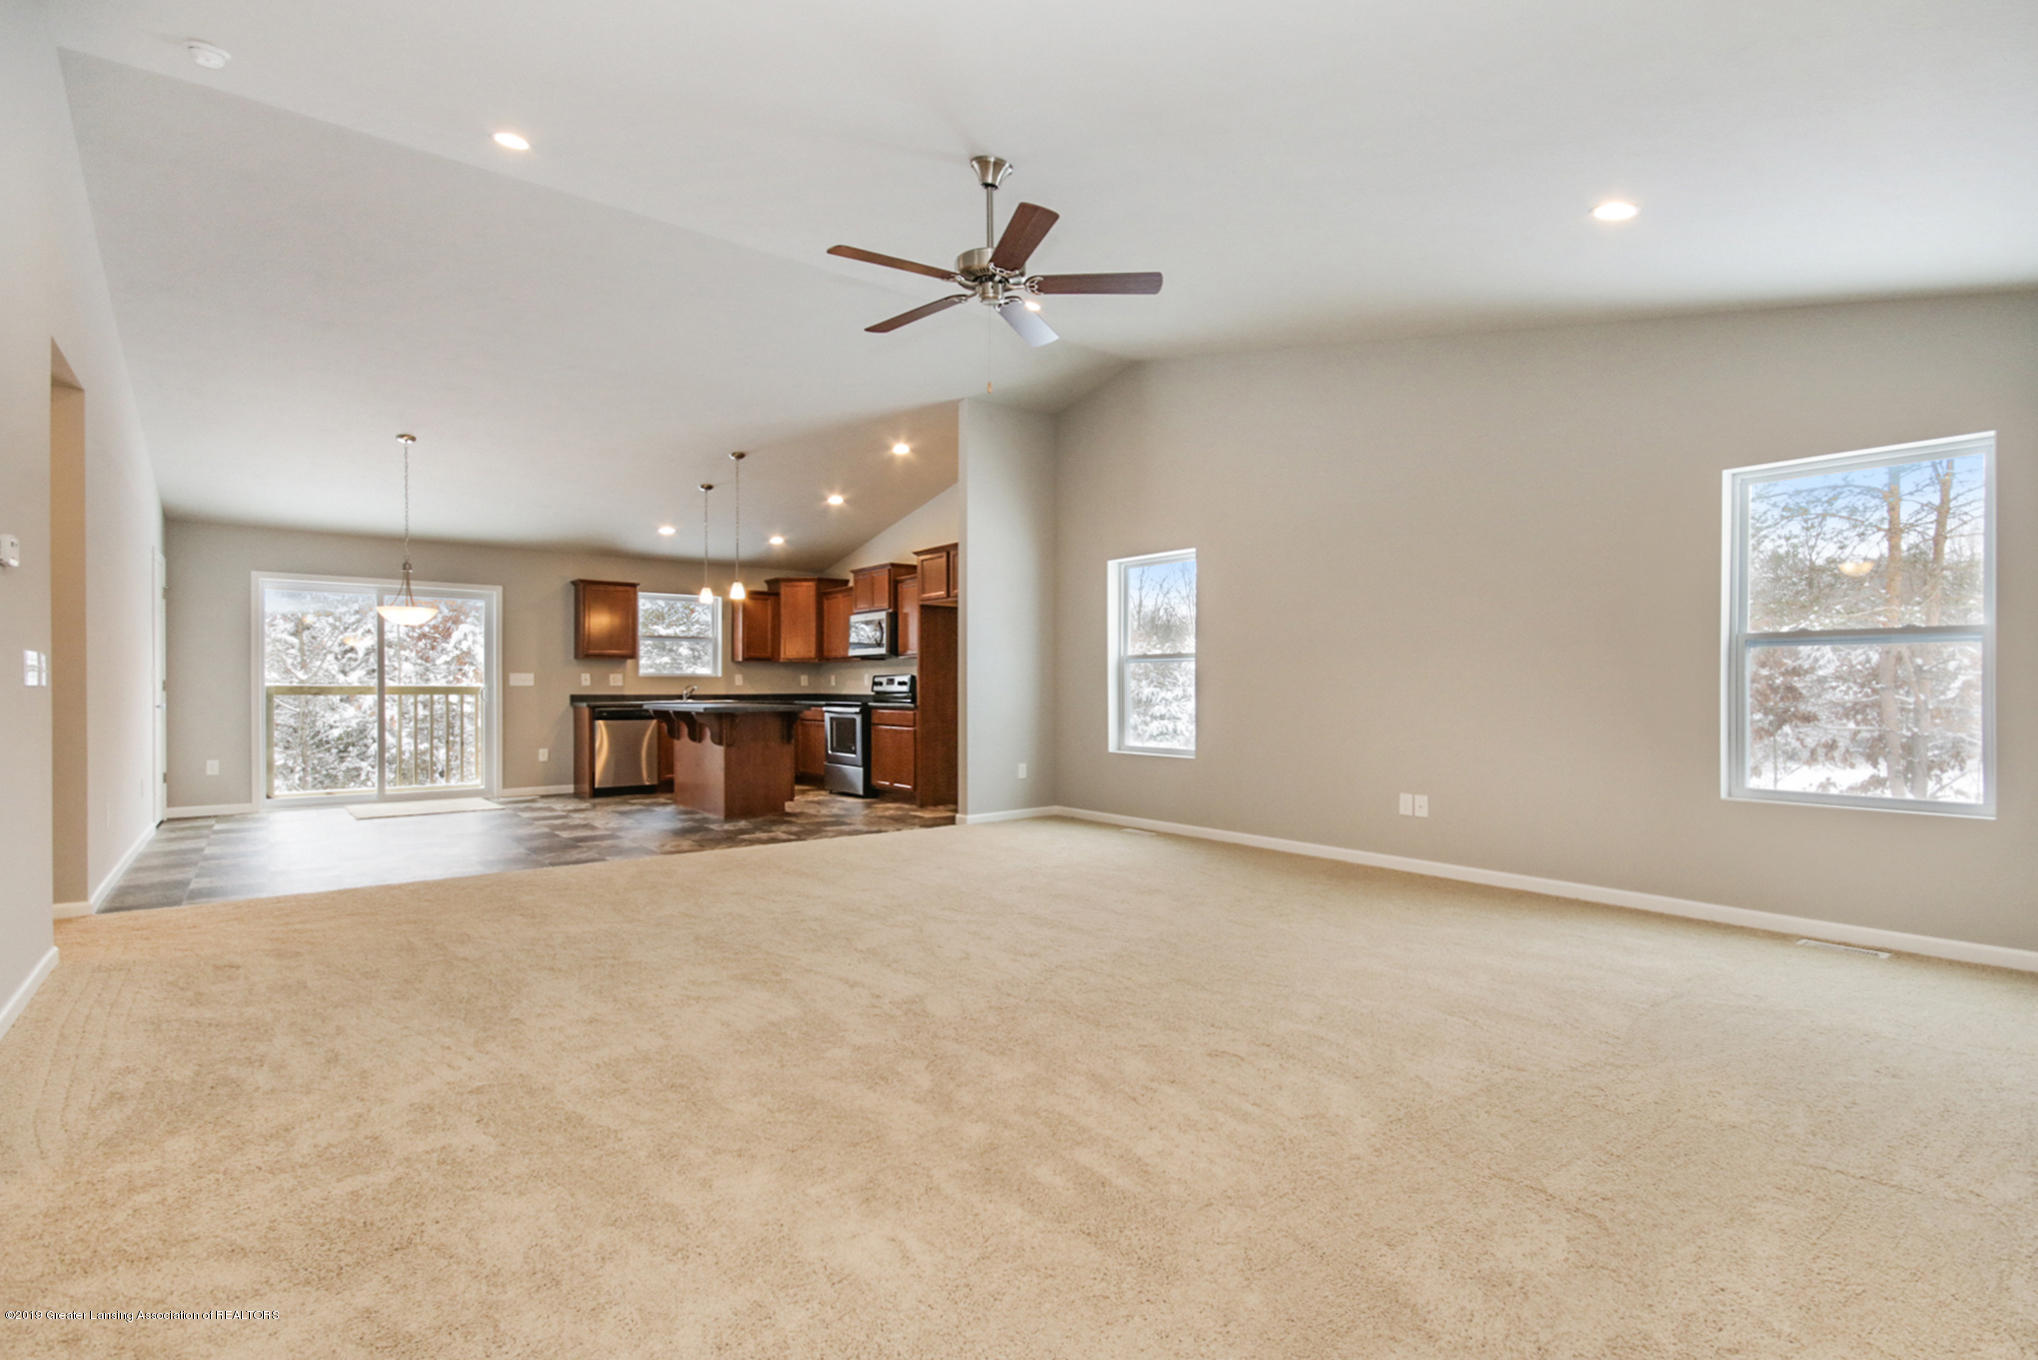 14171 Cordaleigh Dr - GSC035-E1600 Great Room1 - 4